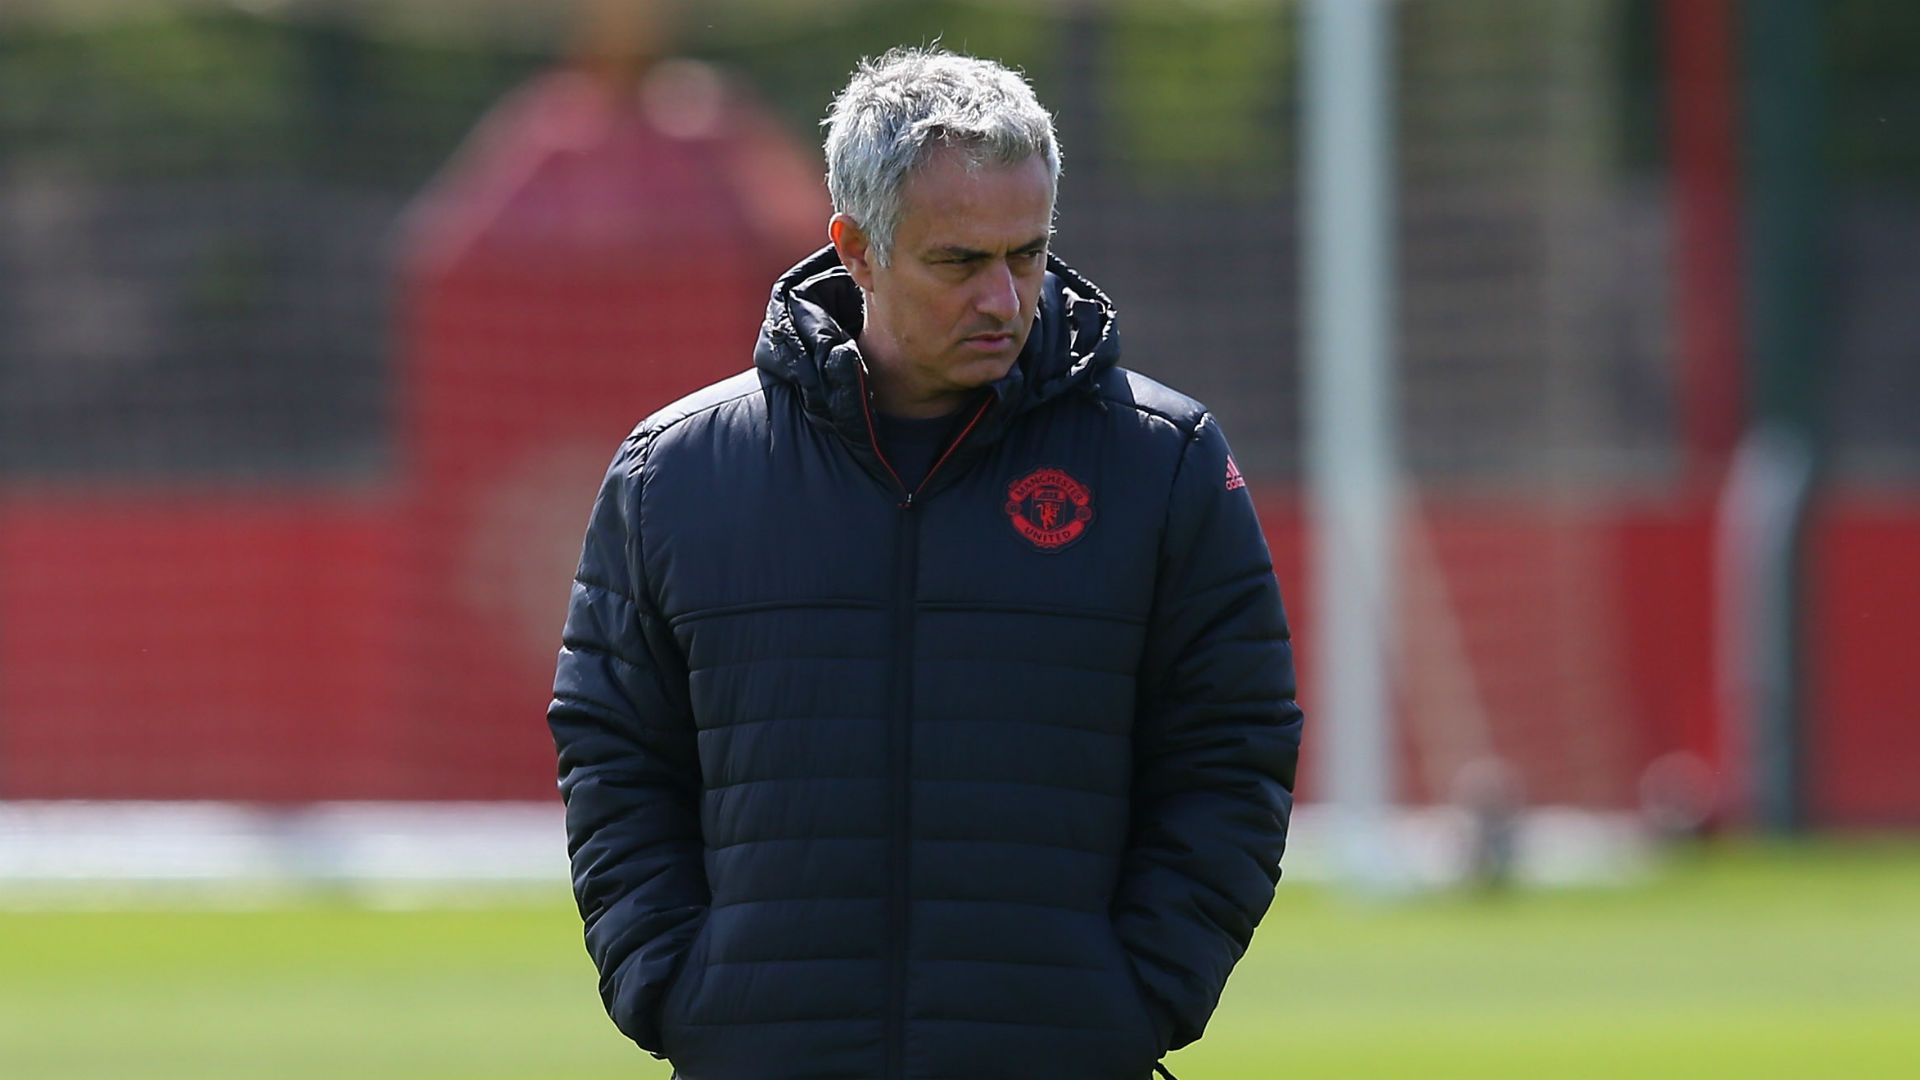 Mourinho vows to rest Man Utd players at Arsenal